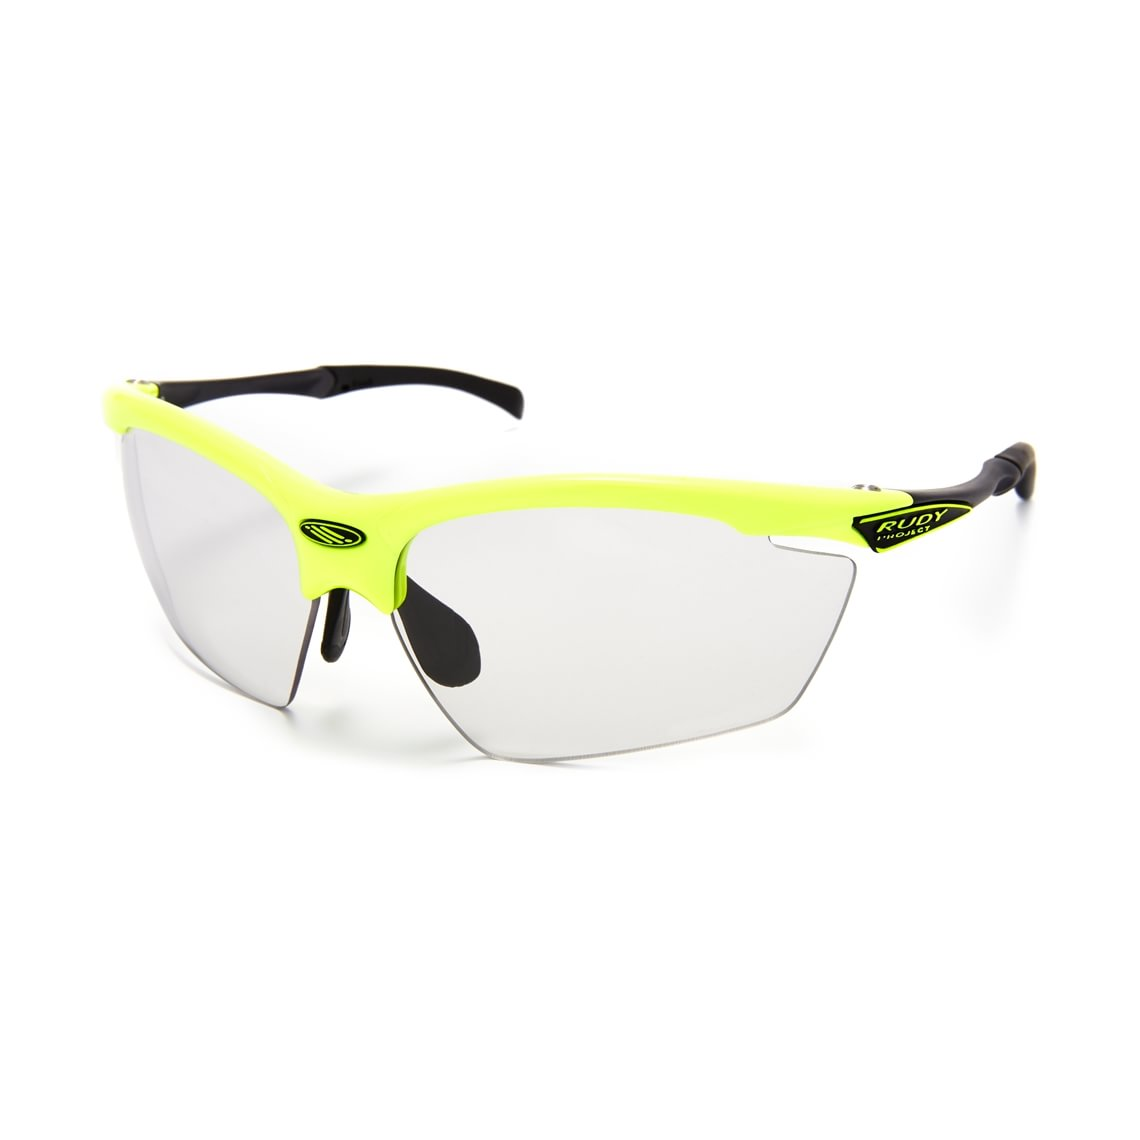 Rudy Project Agon Impact X photochromic 2 Laser Black SP297376-NNI2